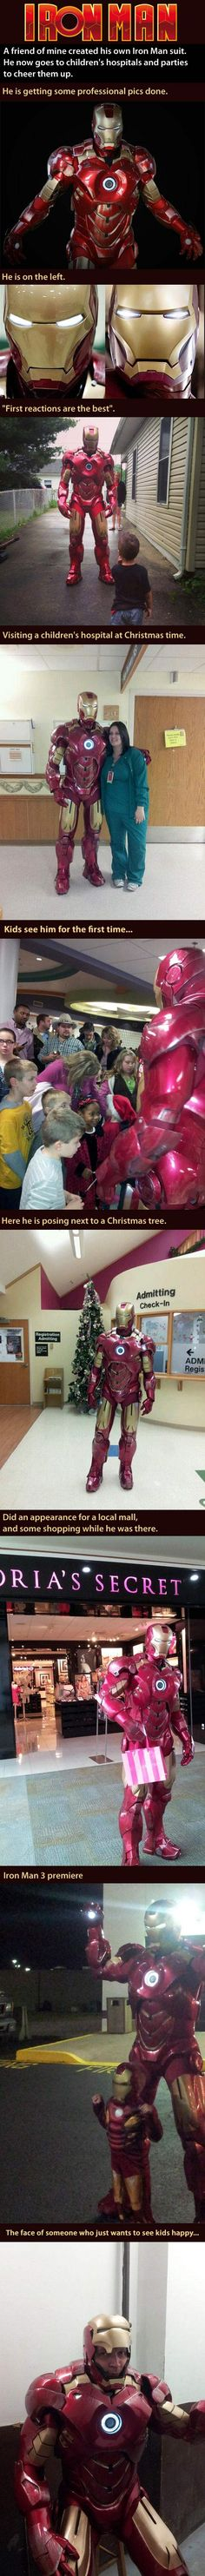 Iron Man with a heart - funny pictures / funny pics / lol / The Meta Picture, Dc Anime, Faith In Humanity Restored, Lol, Cosplay, Geek Out, The Villain, Marvel Movies, In This World